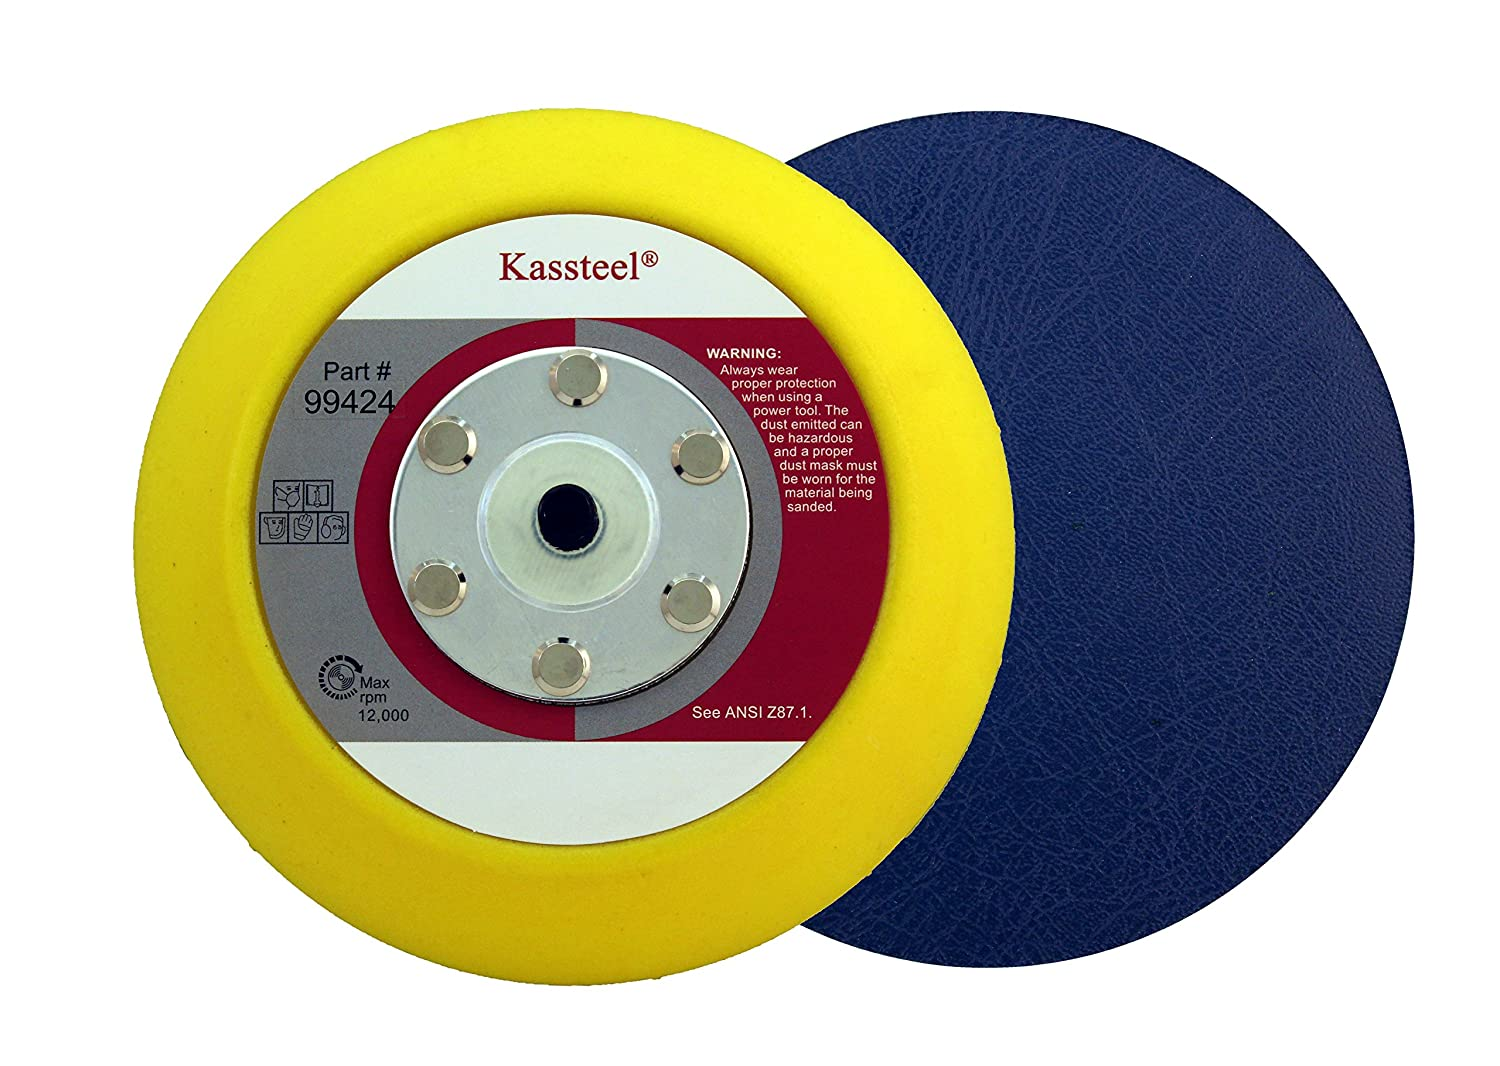 Kassteel 99424 5' PSA Back Up Pad for Makita Sander 16mm Thick Soft for Stone Metric Thread M8x1.25 1 Pad